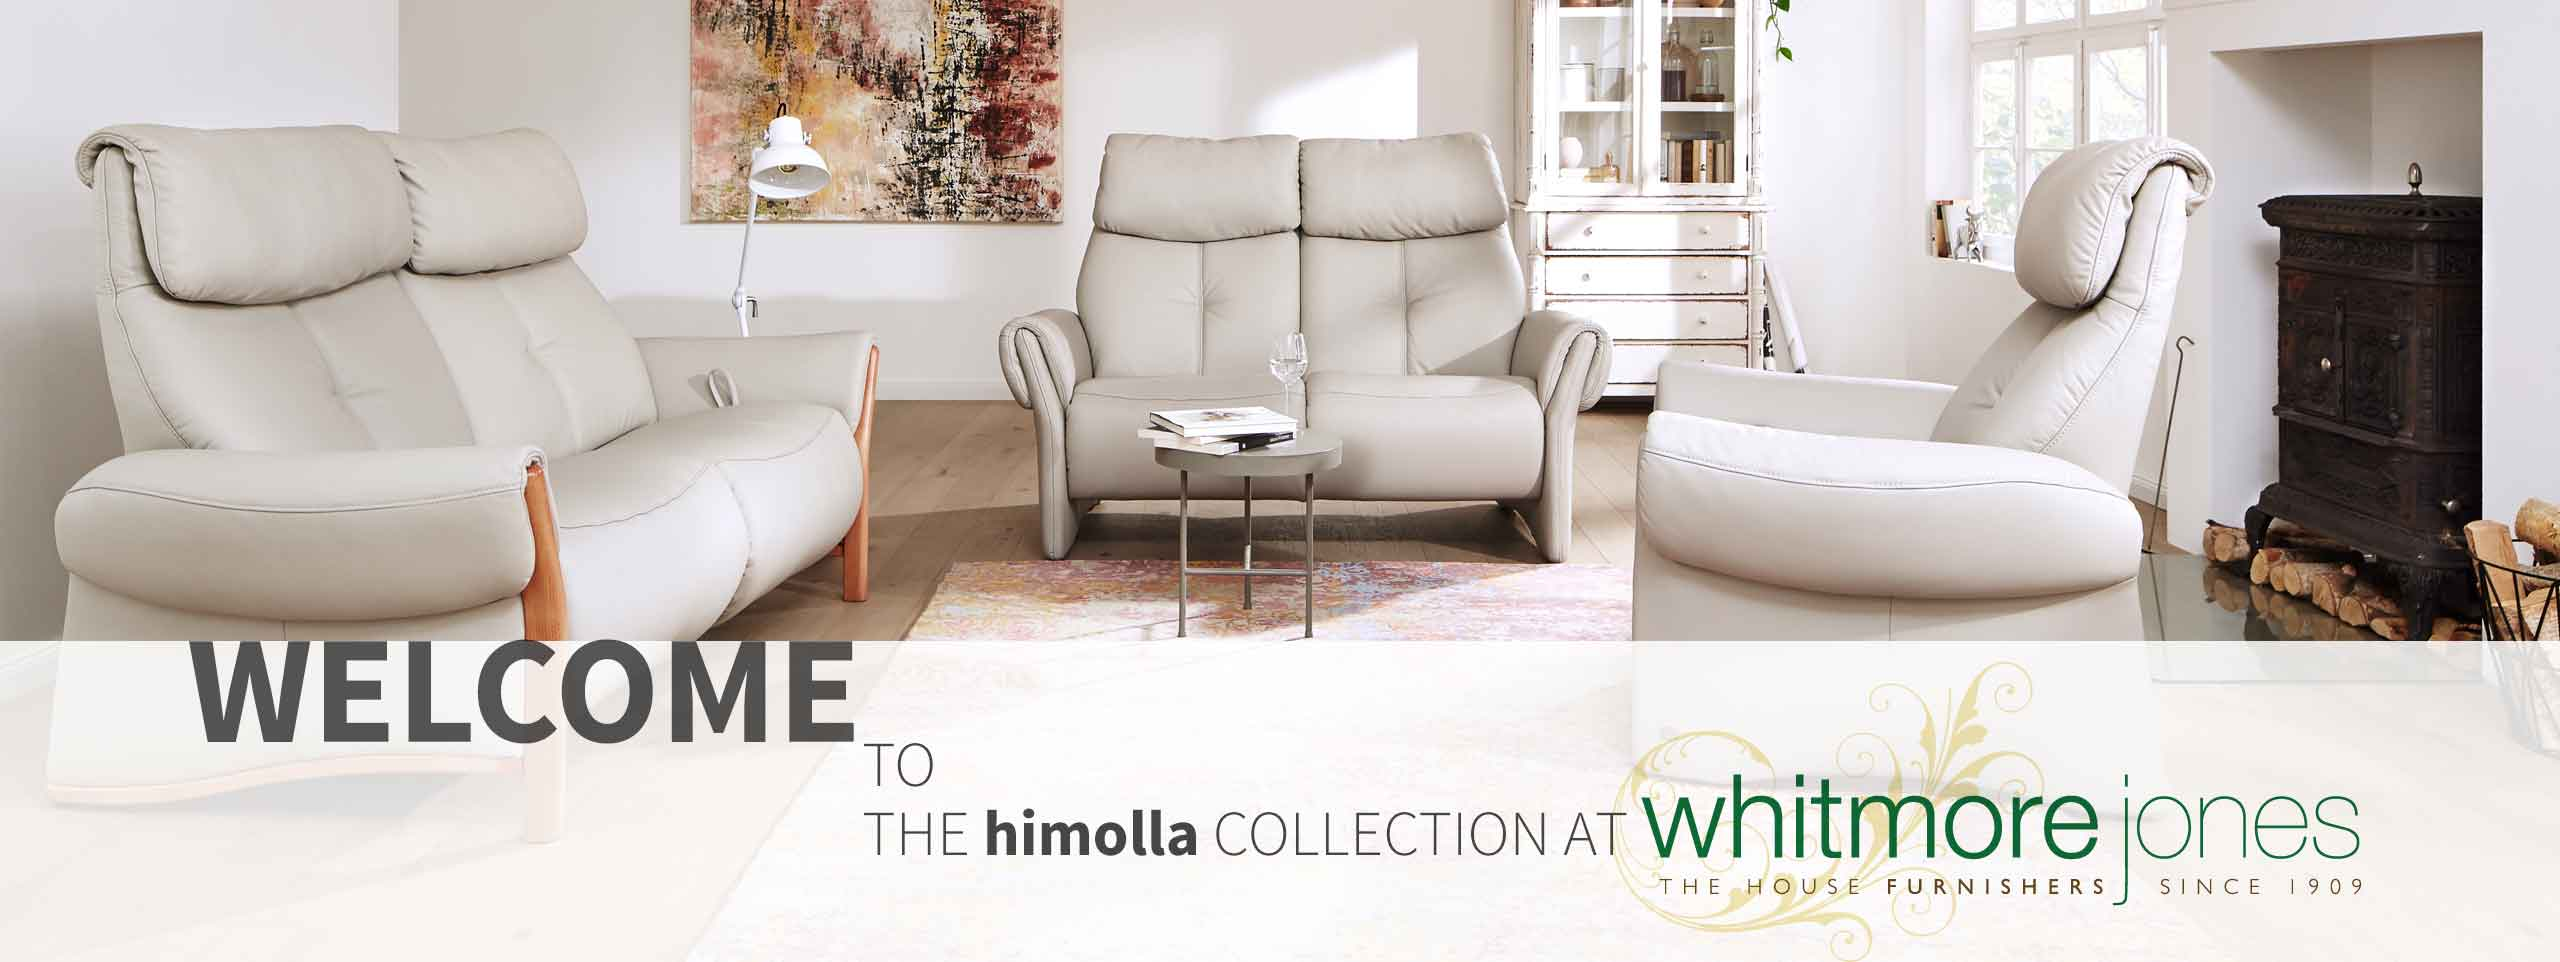 Surrey landing page for Whitmore Jones himolla collection